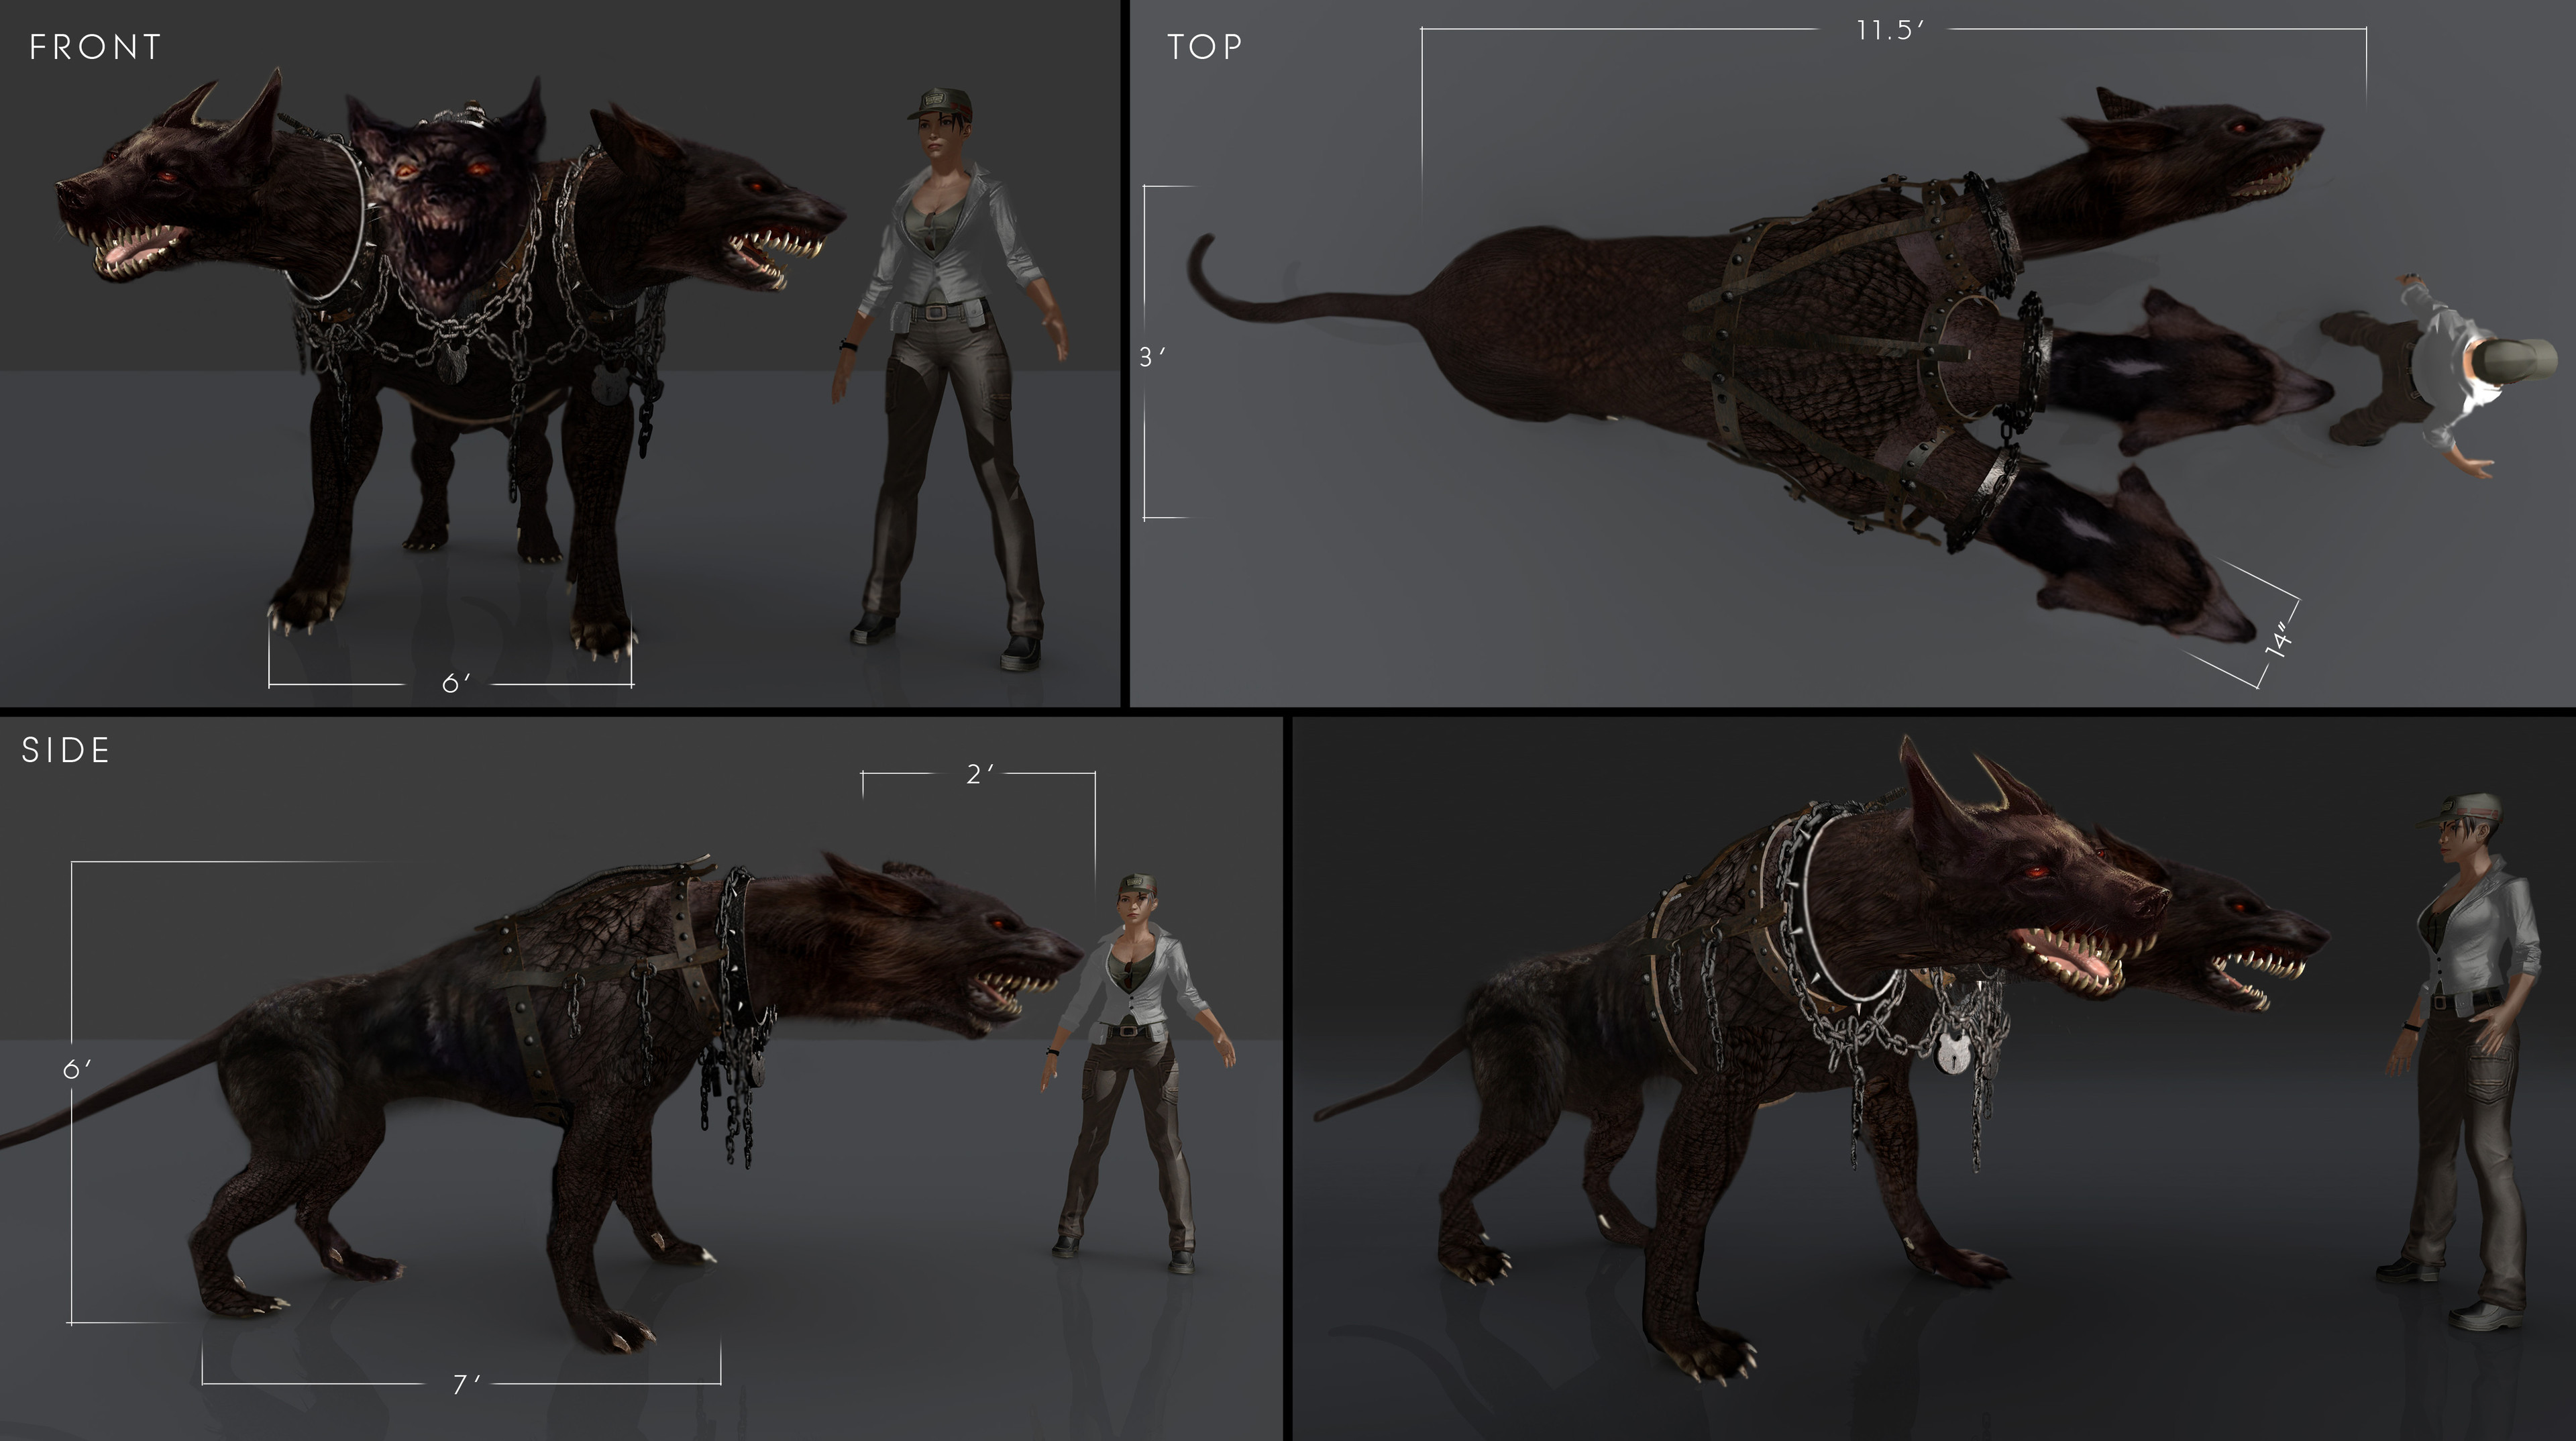 3 Headed Dog Concept  / Once Upon  a Time Season 5